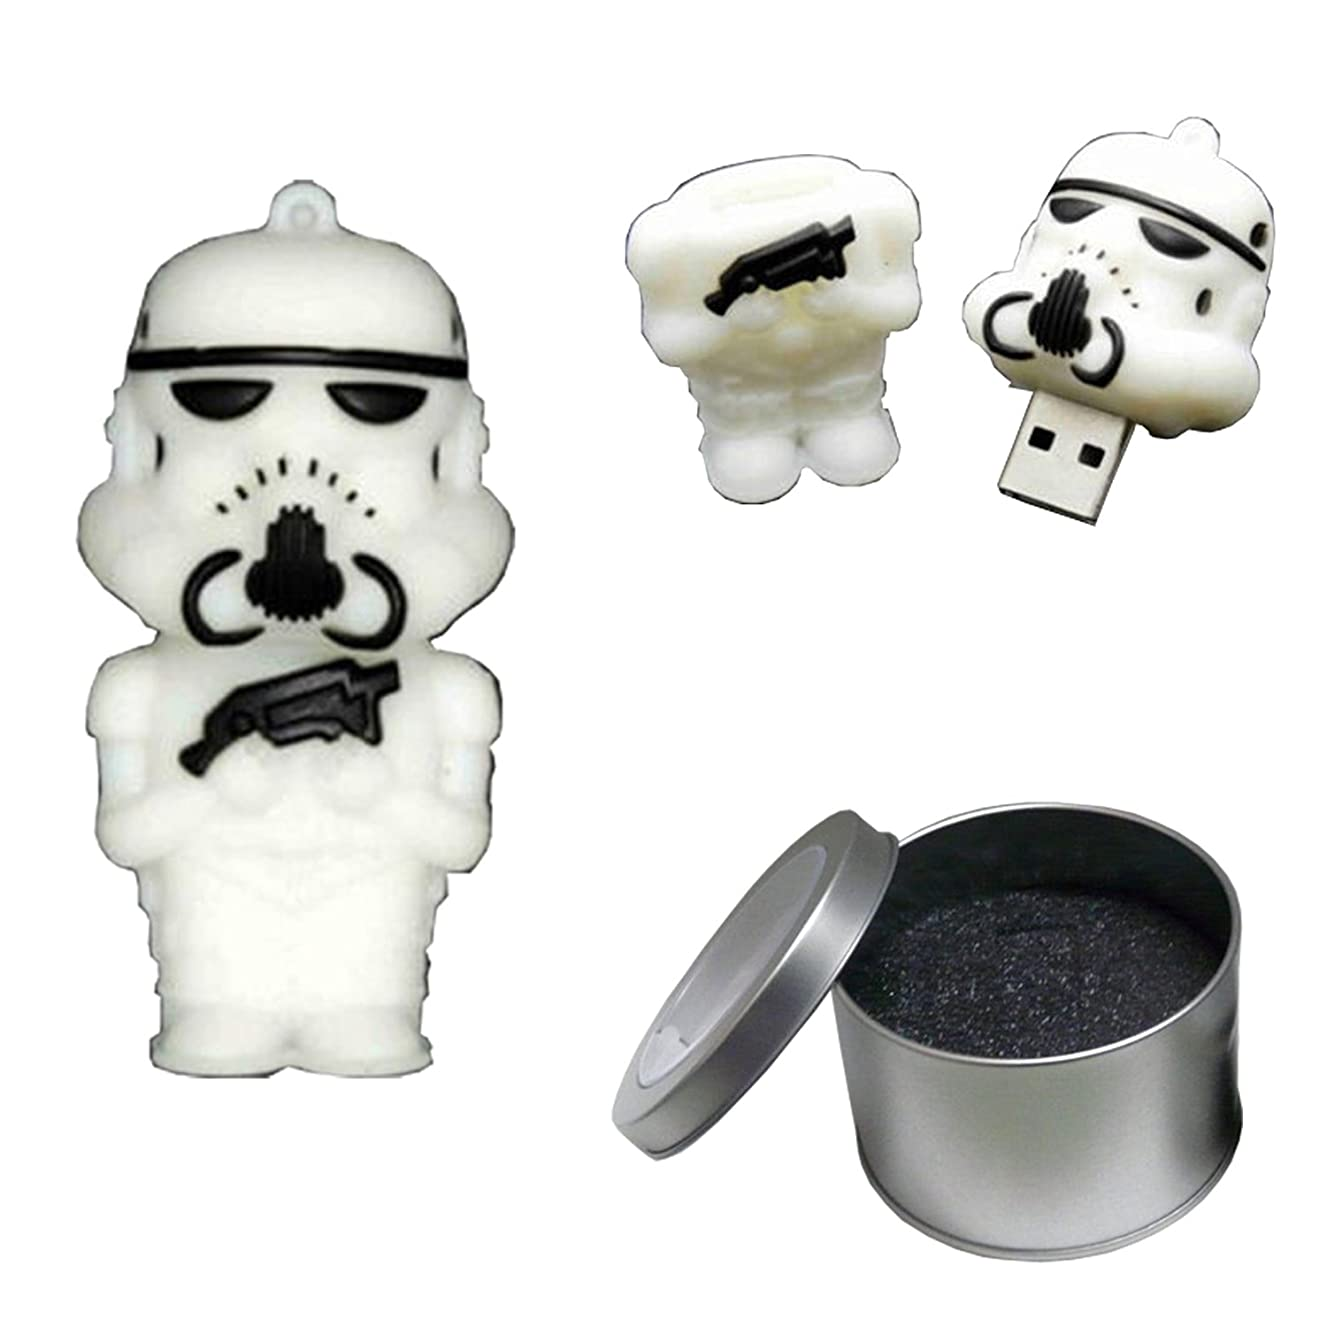 Cool 16GB 32GB USB Port Mini Flash Storage Drive Collection Many Styles Metal For Home Car Kids Adults Fun